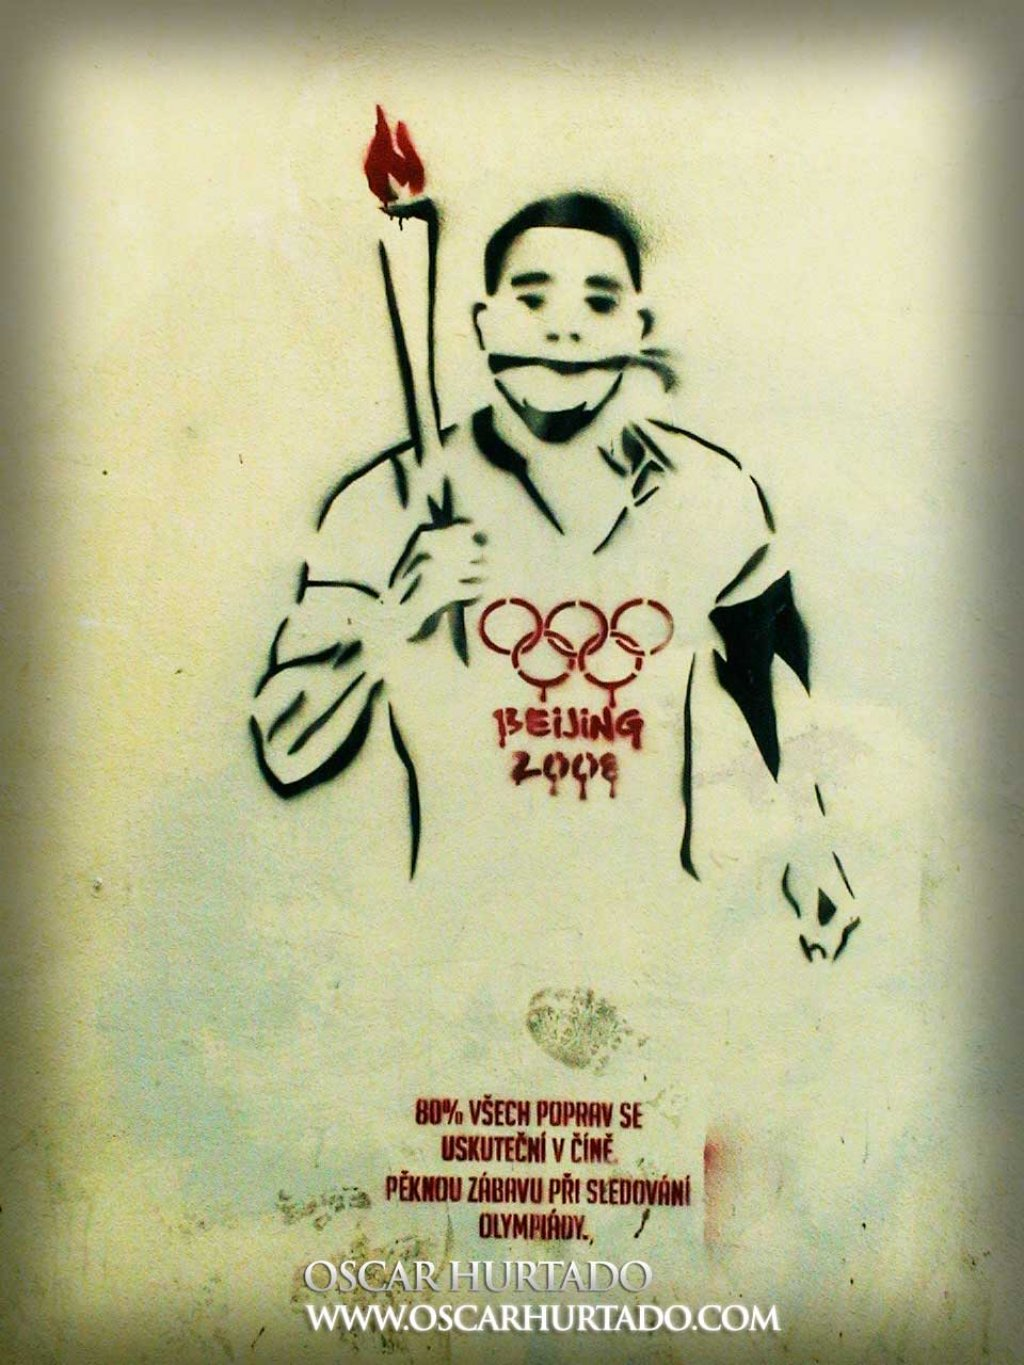 Black and red graffiti of an Olympic athlete with the Beijing 2008 logo bleeding on his chest due to human rights abuses during the preparations for the games